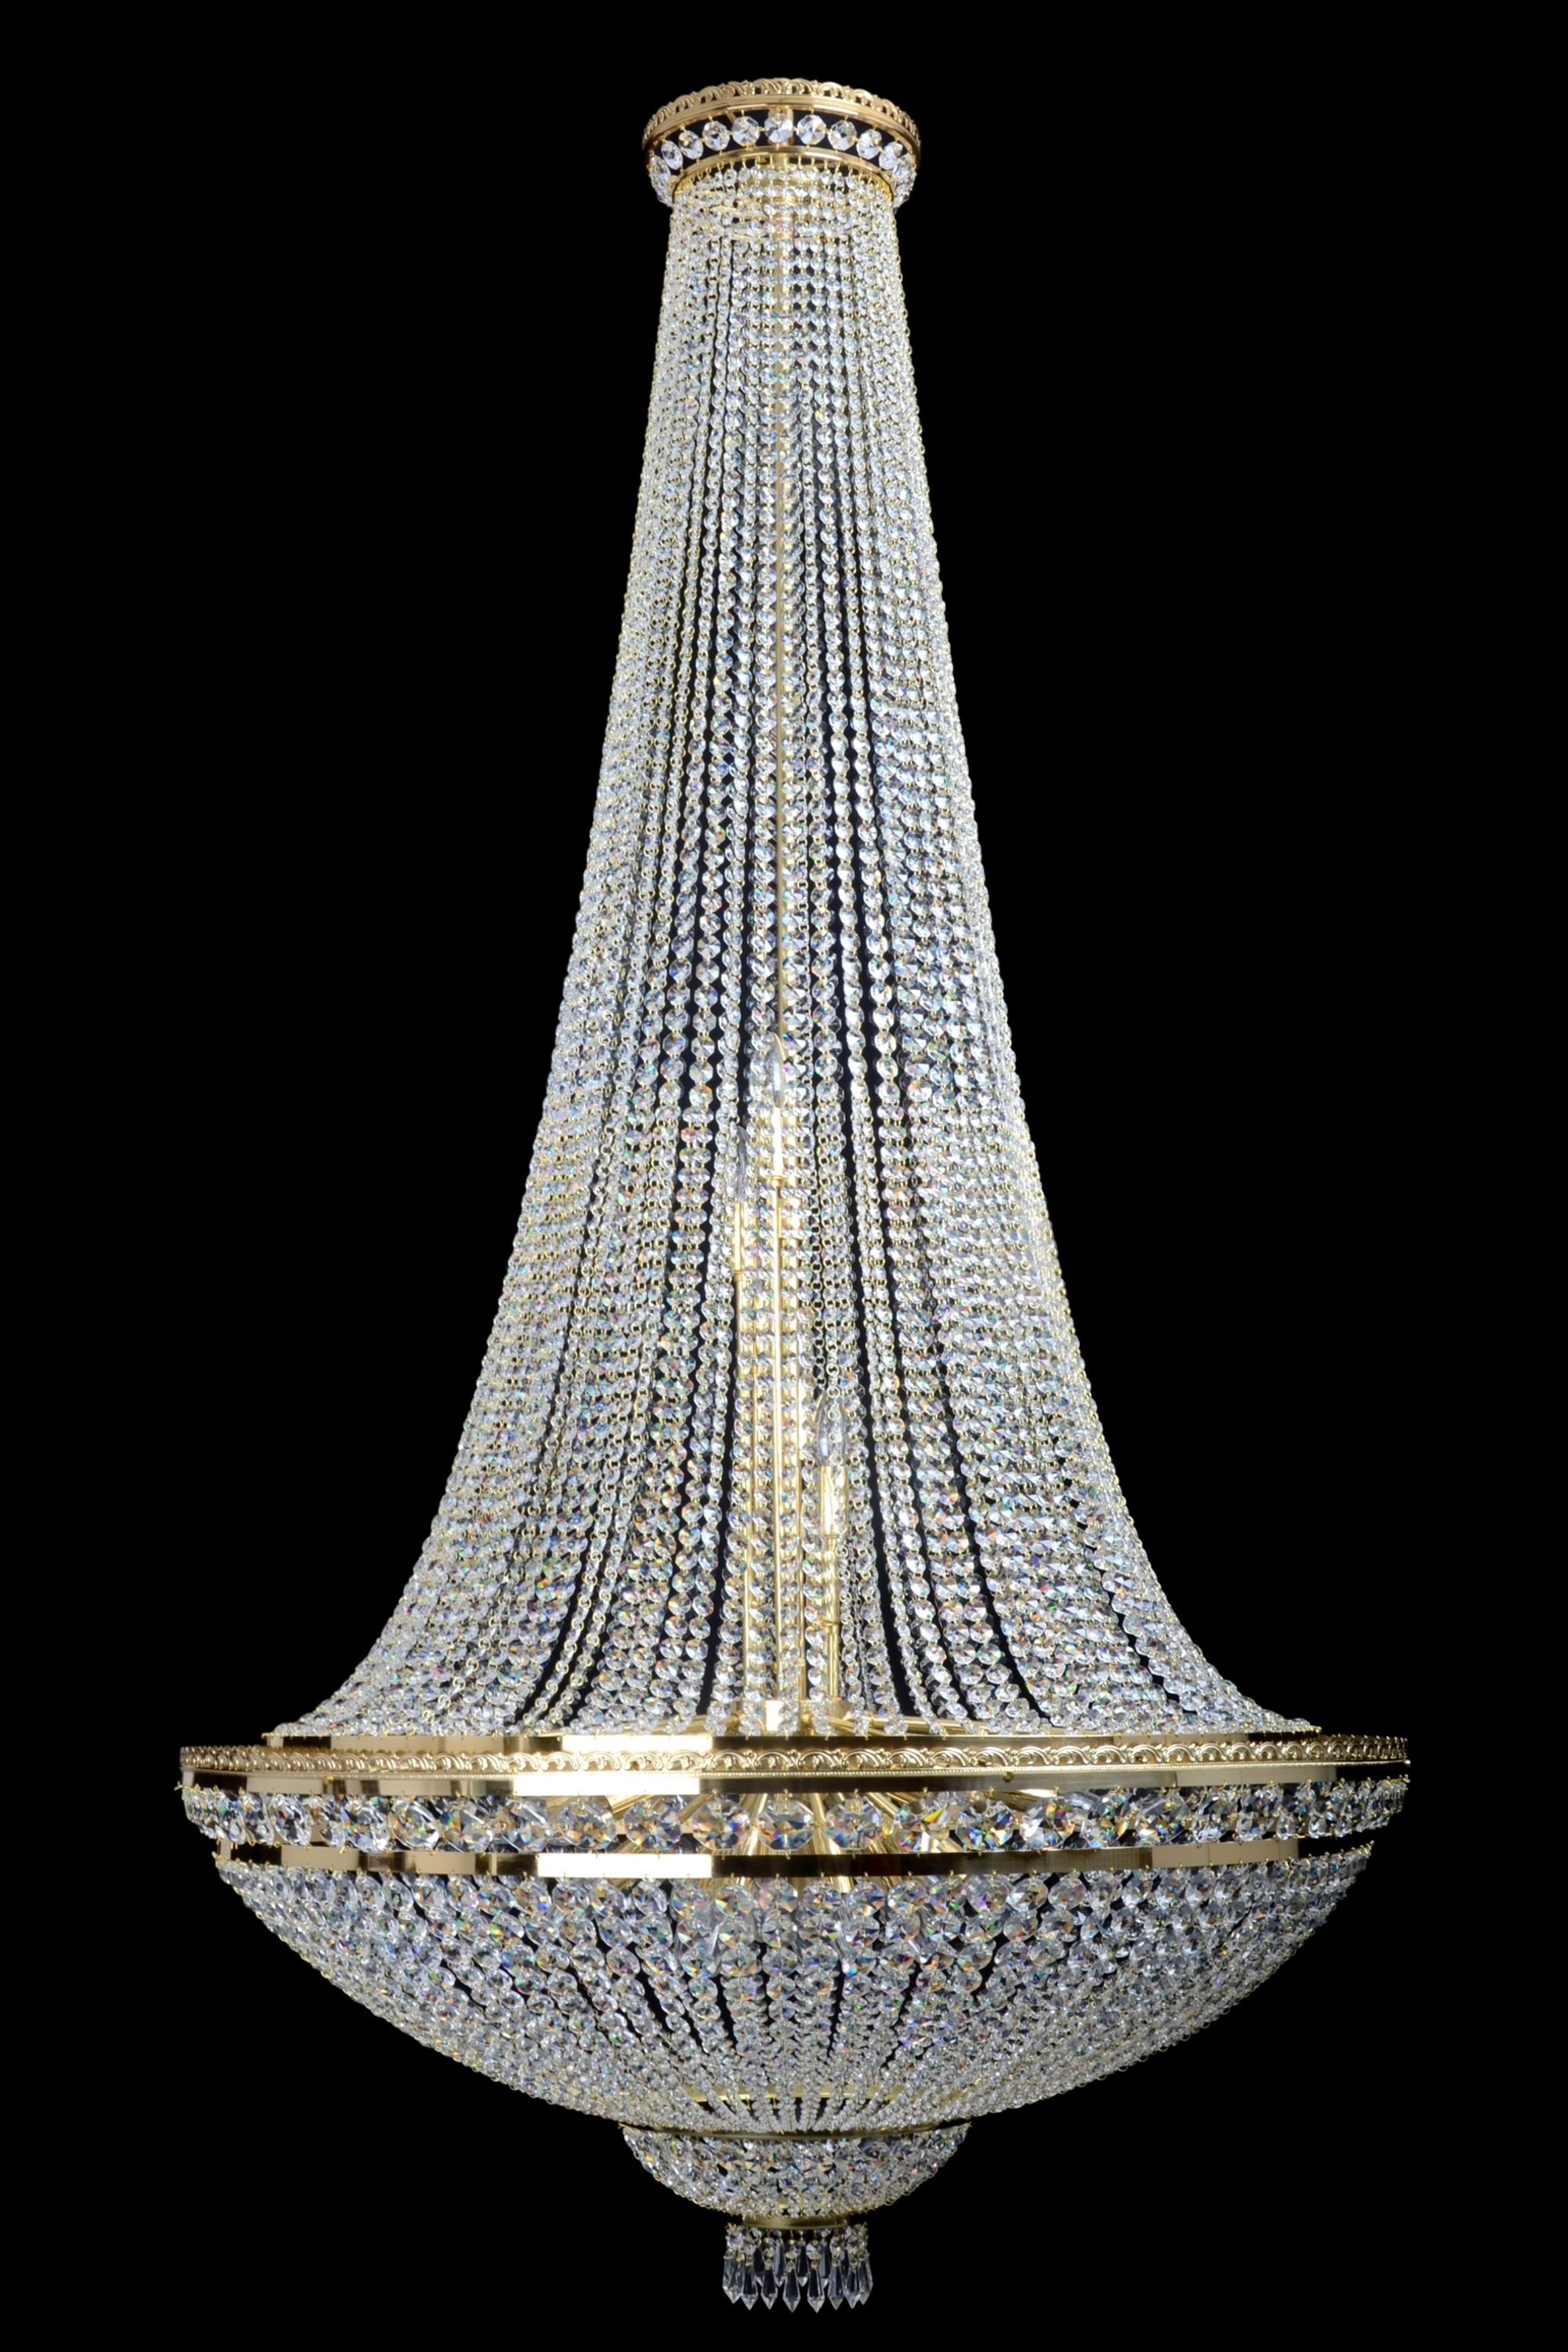 Current Ccb7150 21 Basket Style Empire Chandelier – The Crystal Chandelier Regarding Traditional Crystal Chandeliers (View 14 of 15)